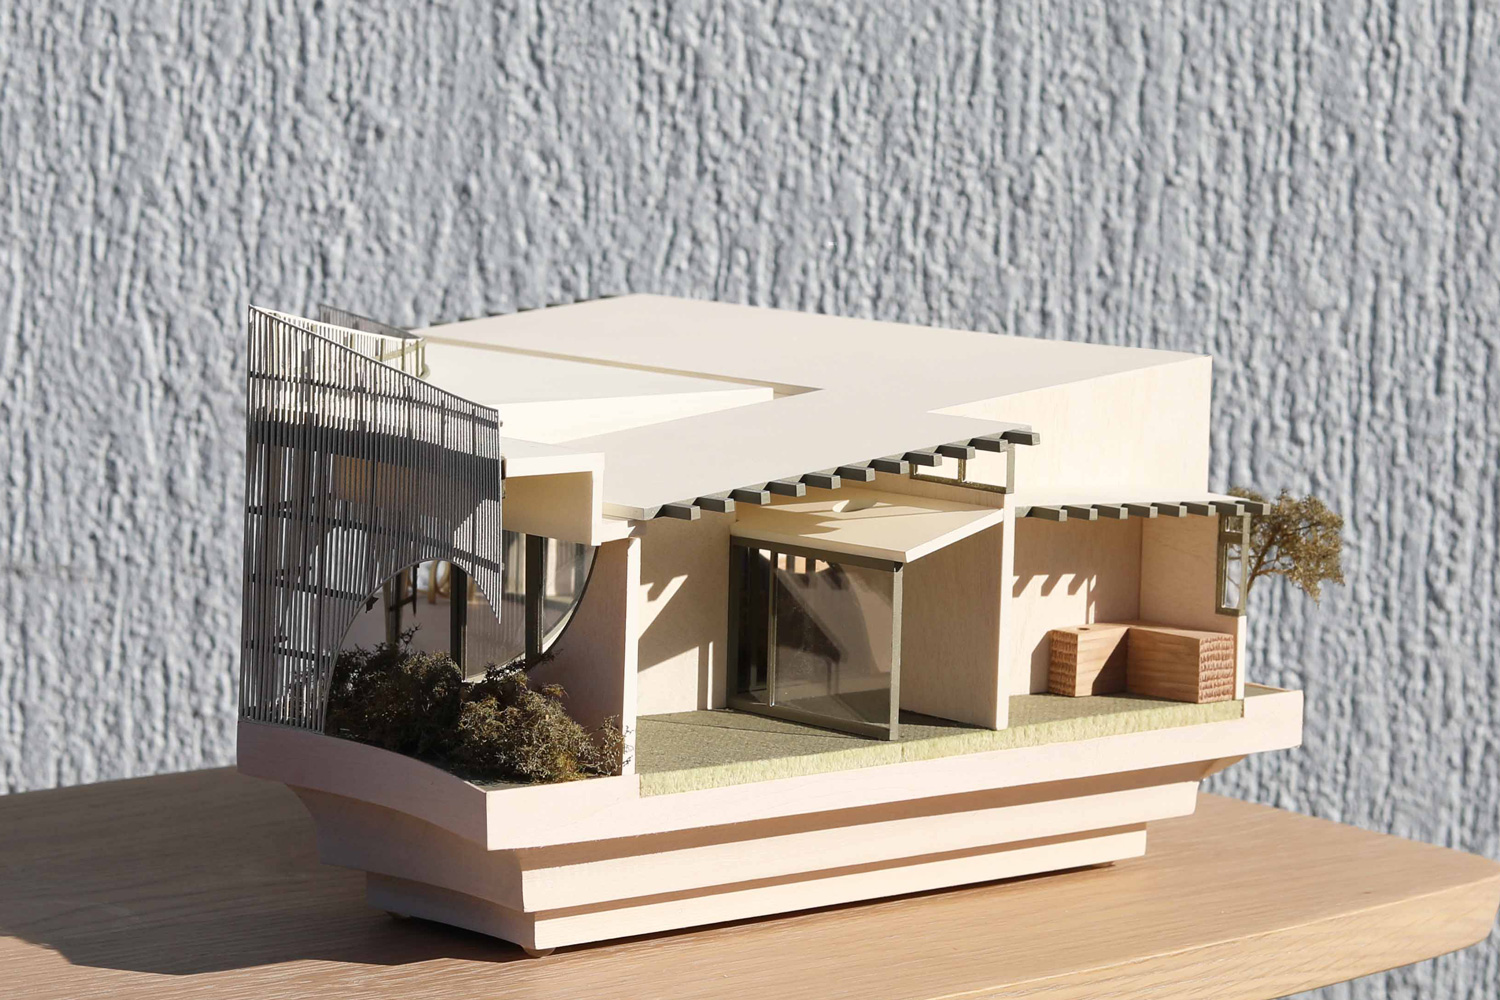 Bespoke presentation model made from a mix of Timber and Acylic for Cohen Leigh at 1:50